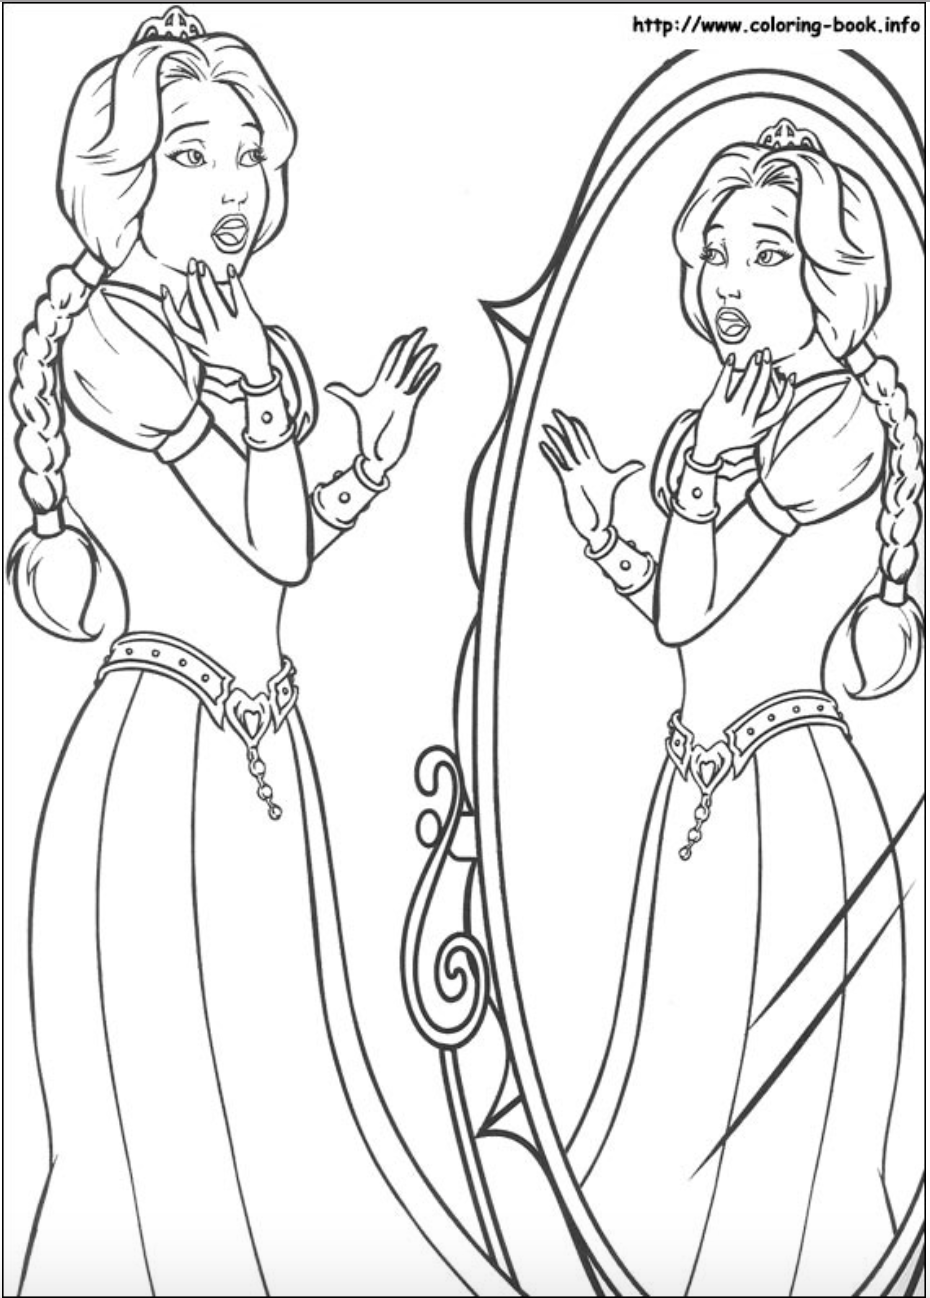 Princess Fiona And Her Beautiful Reflection In The Mirror Coloring Page Coloring Pages Free Coloring Pages Colorful Drawings